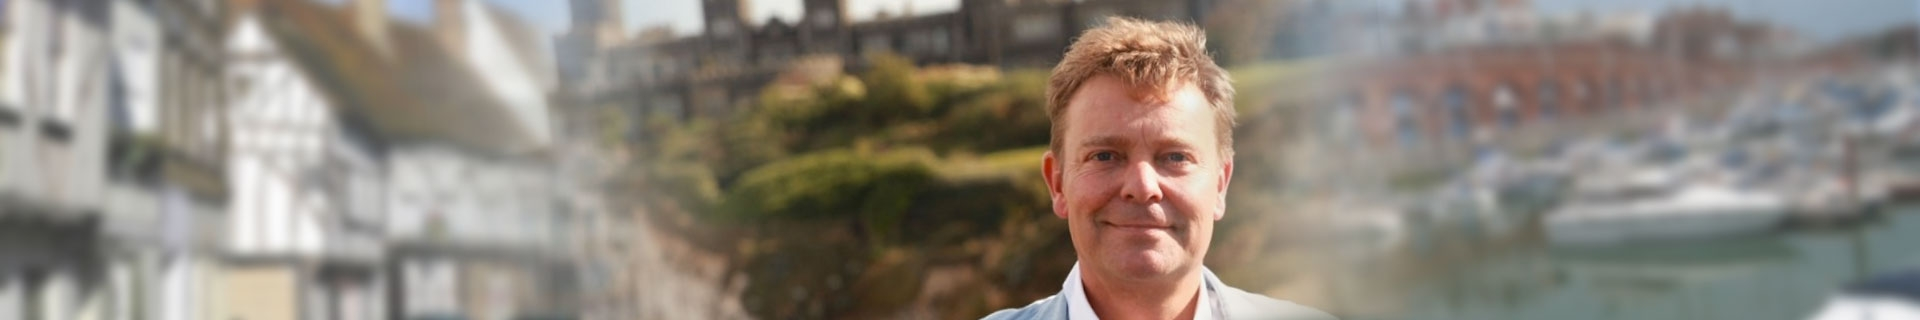 Banner image for Craig Mackinlay MP